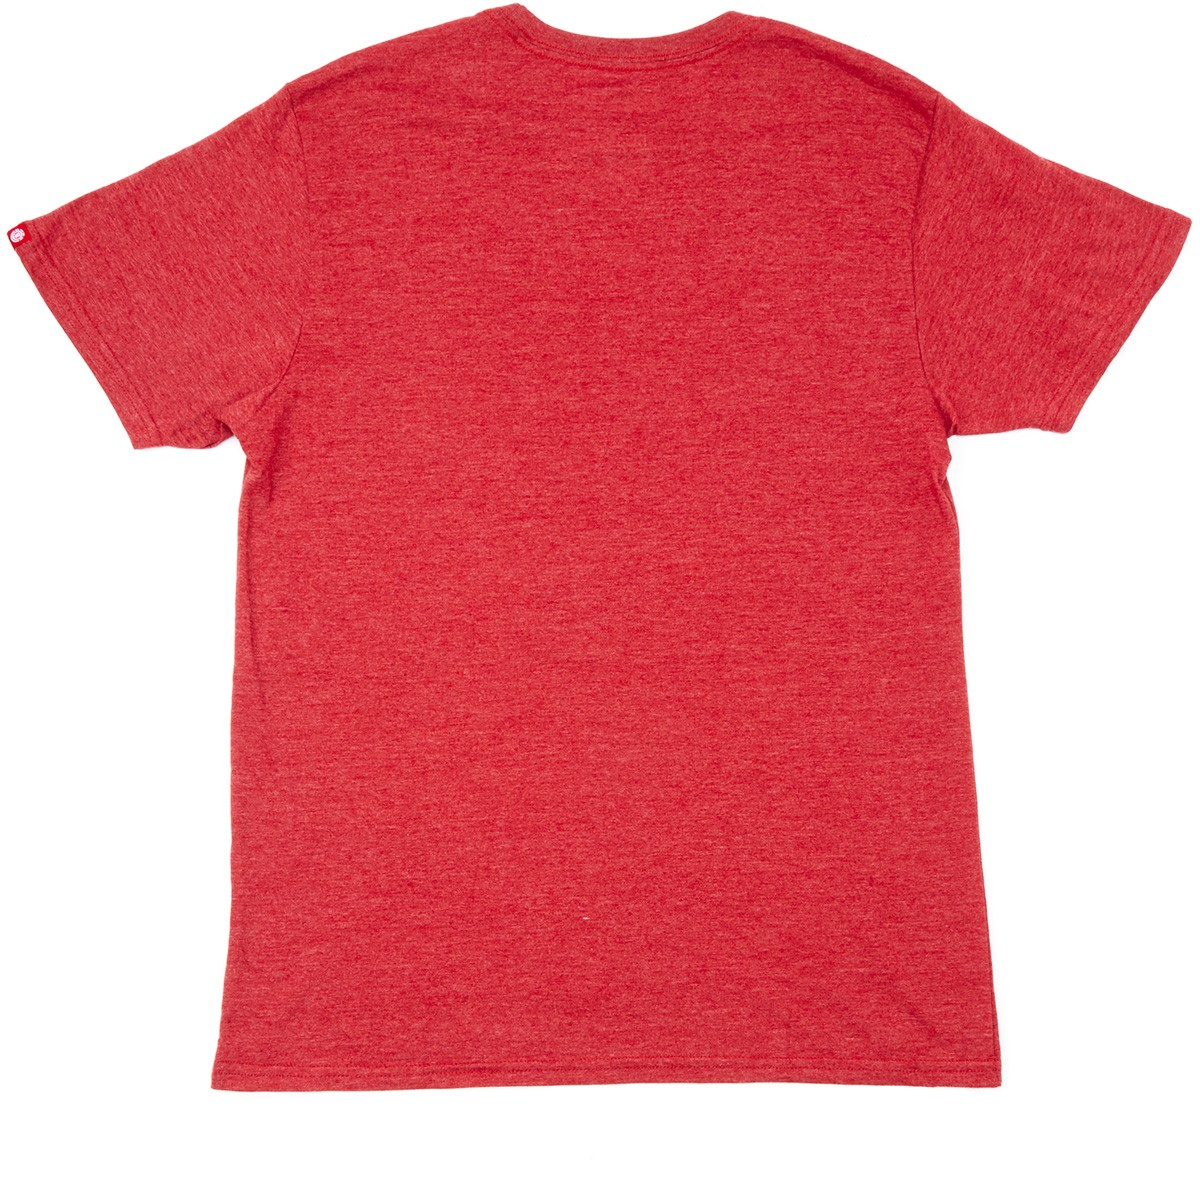 Element brand t shirt red heather for Name brand t shirts on sale